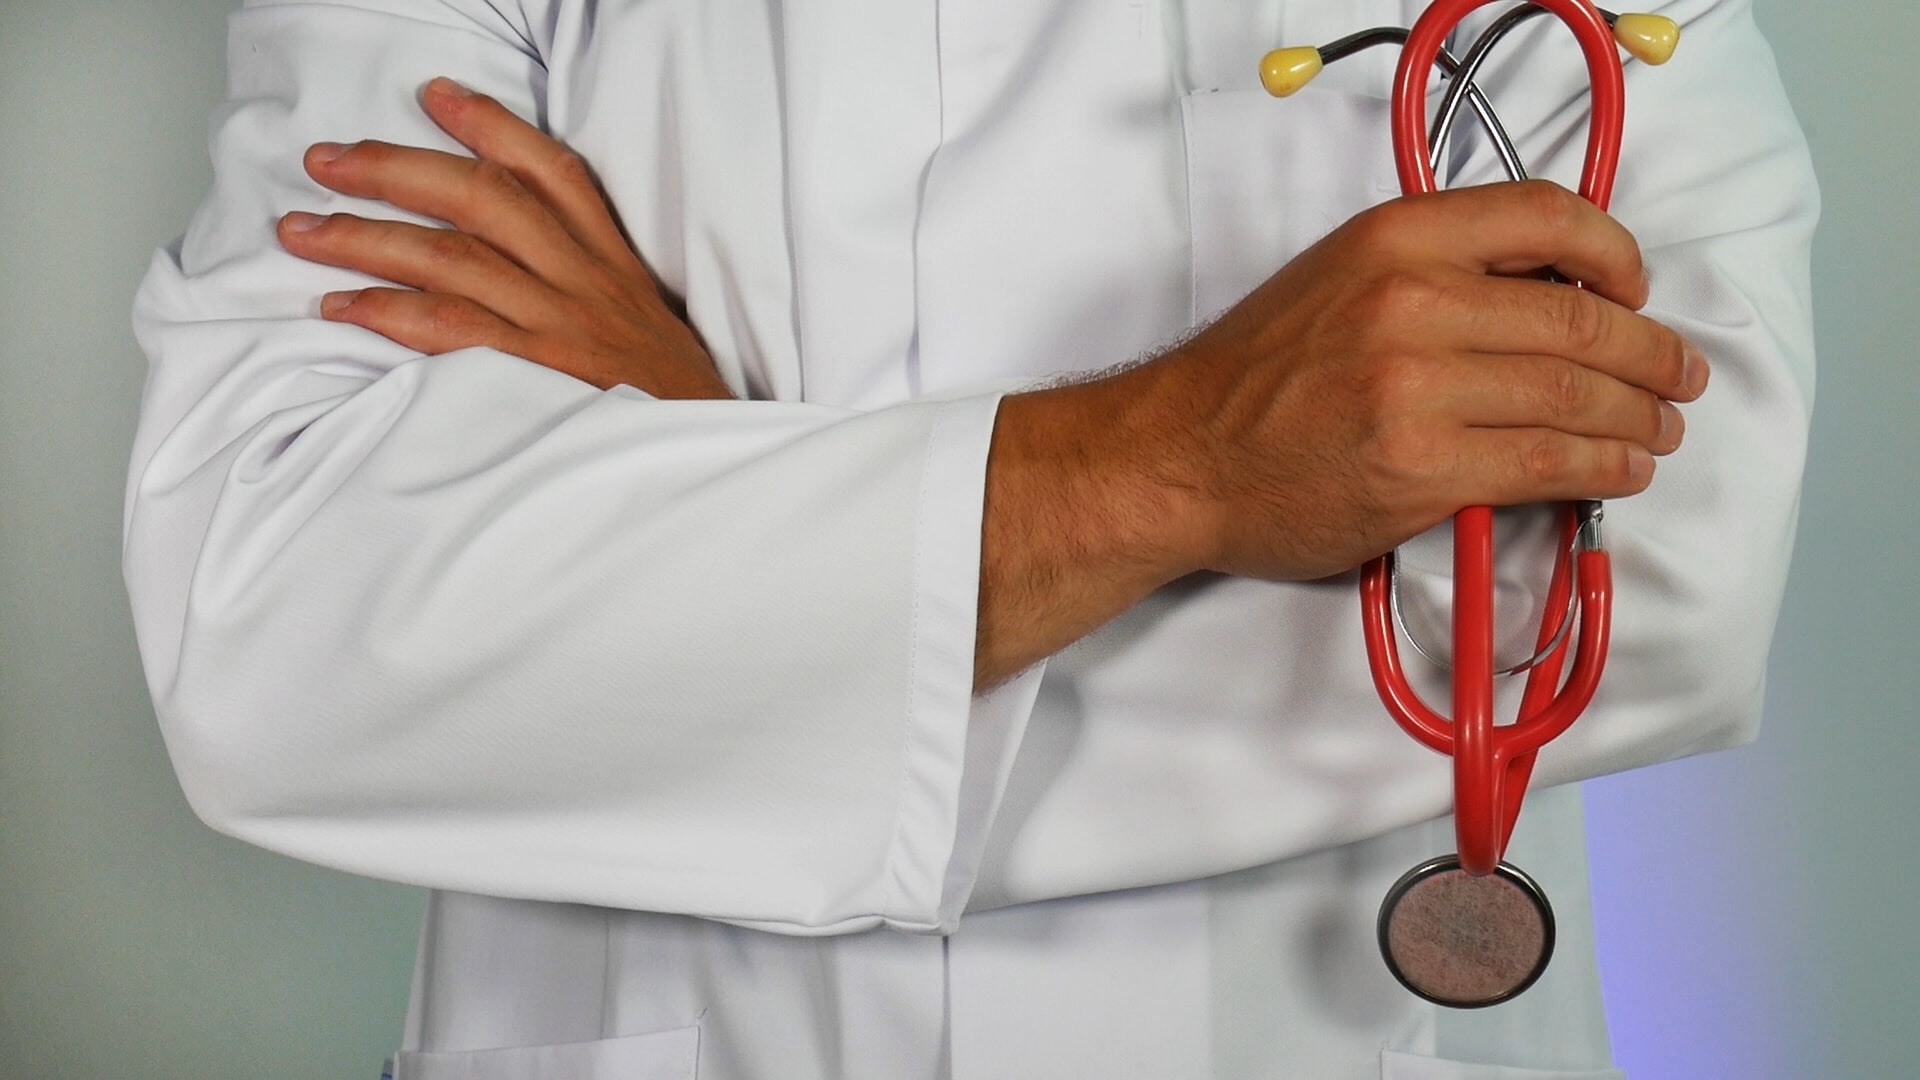 Physician Subscription Model for Primary Healthcare